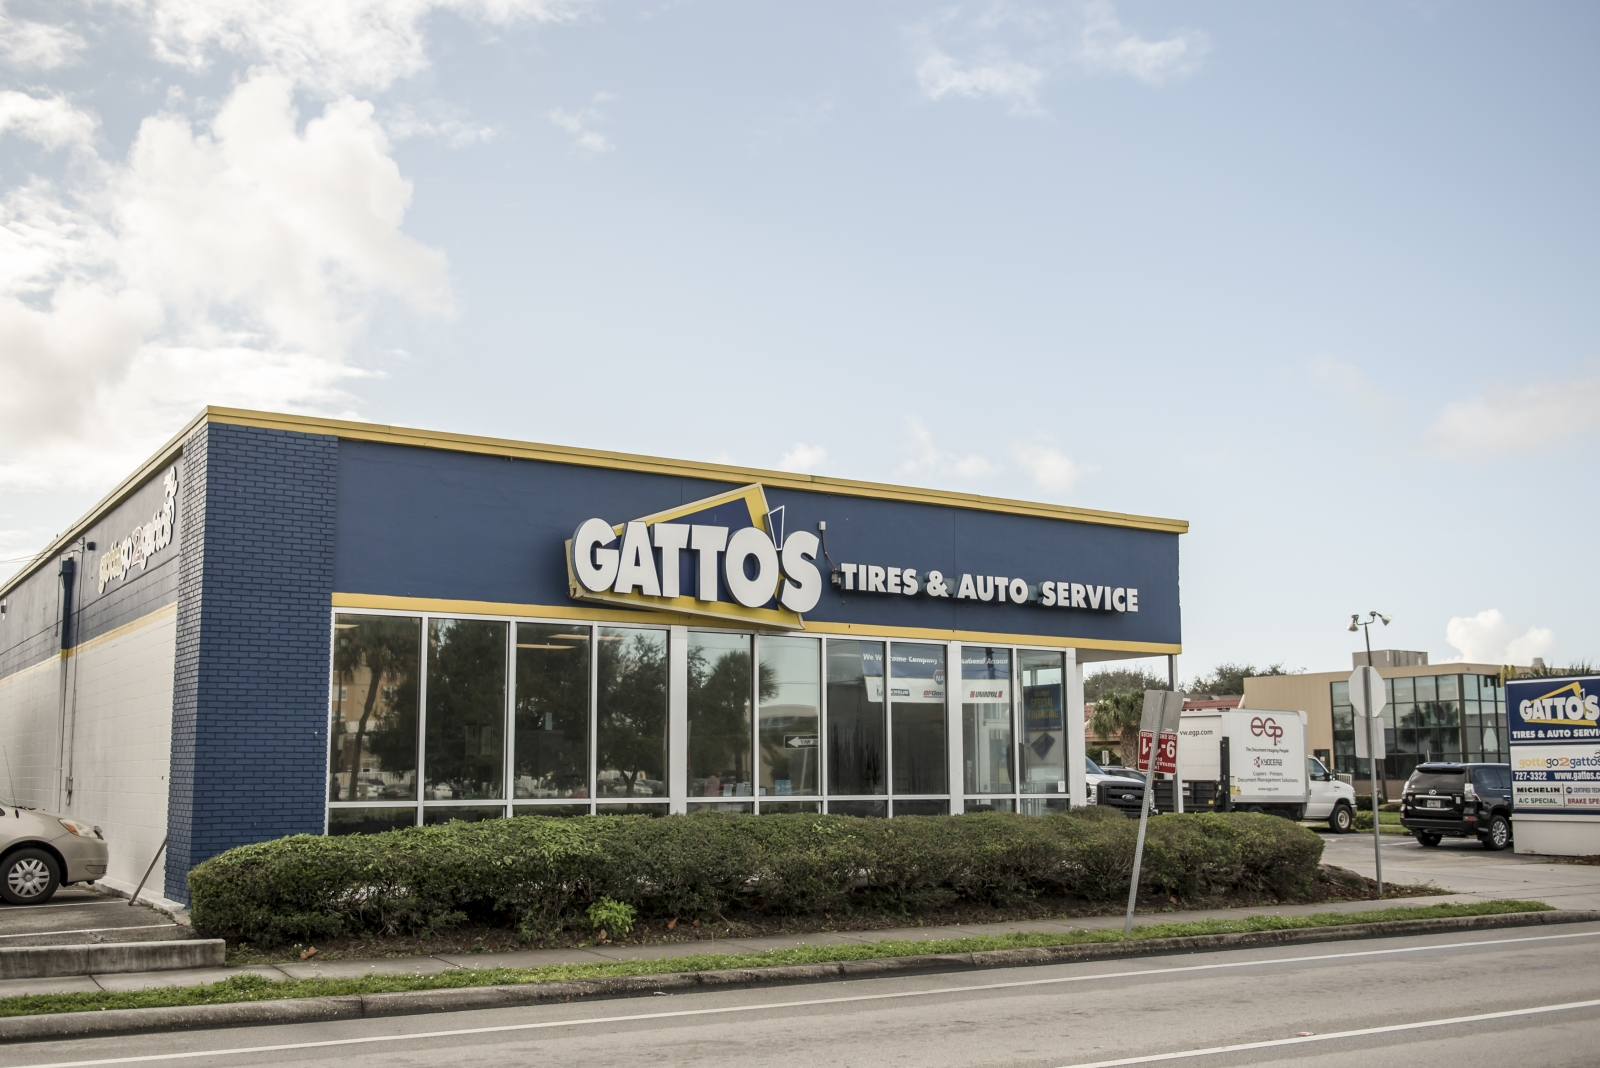 IN THE FAMILY: Despite its expansion and growth, Gatto's has remained a family-owner, independent repair facility, catering directly to its neighborhood markets.